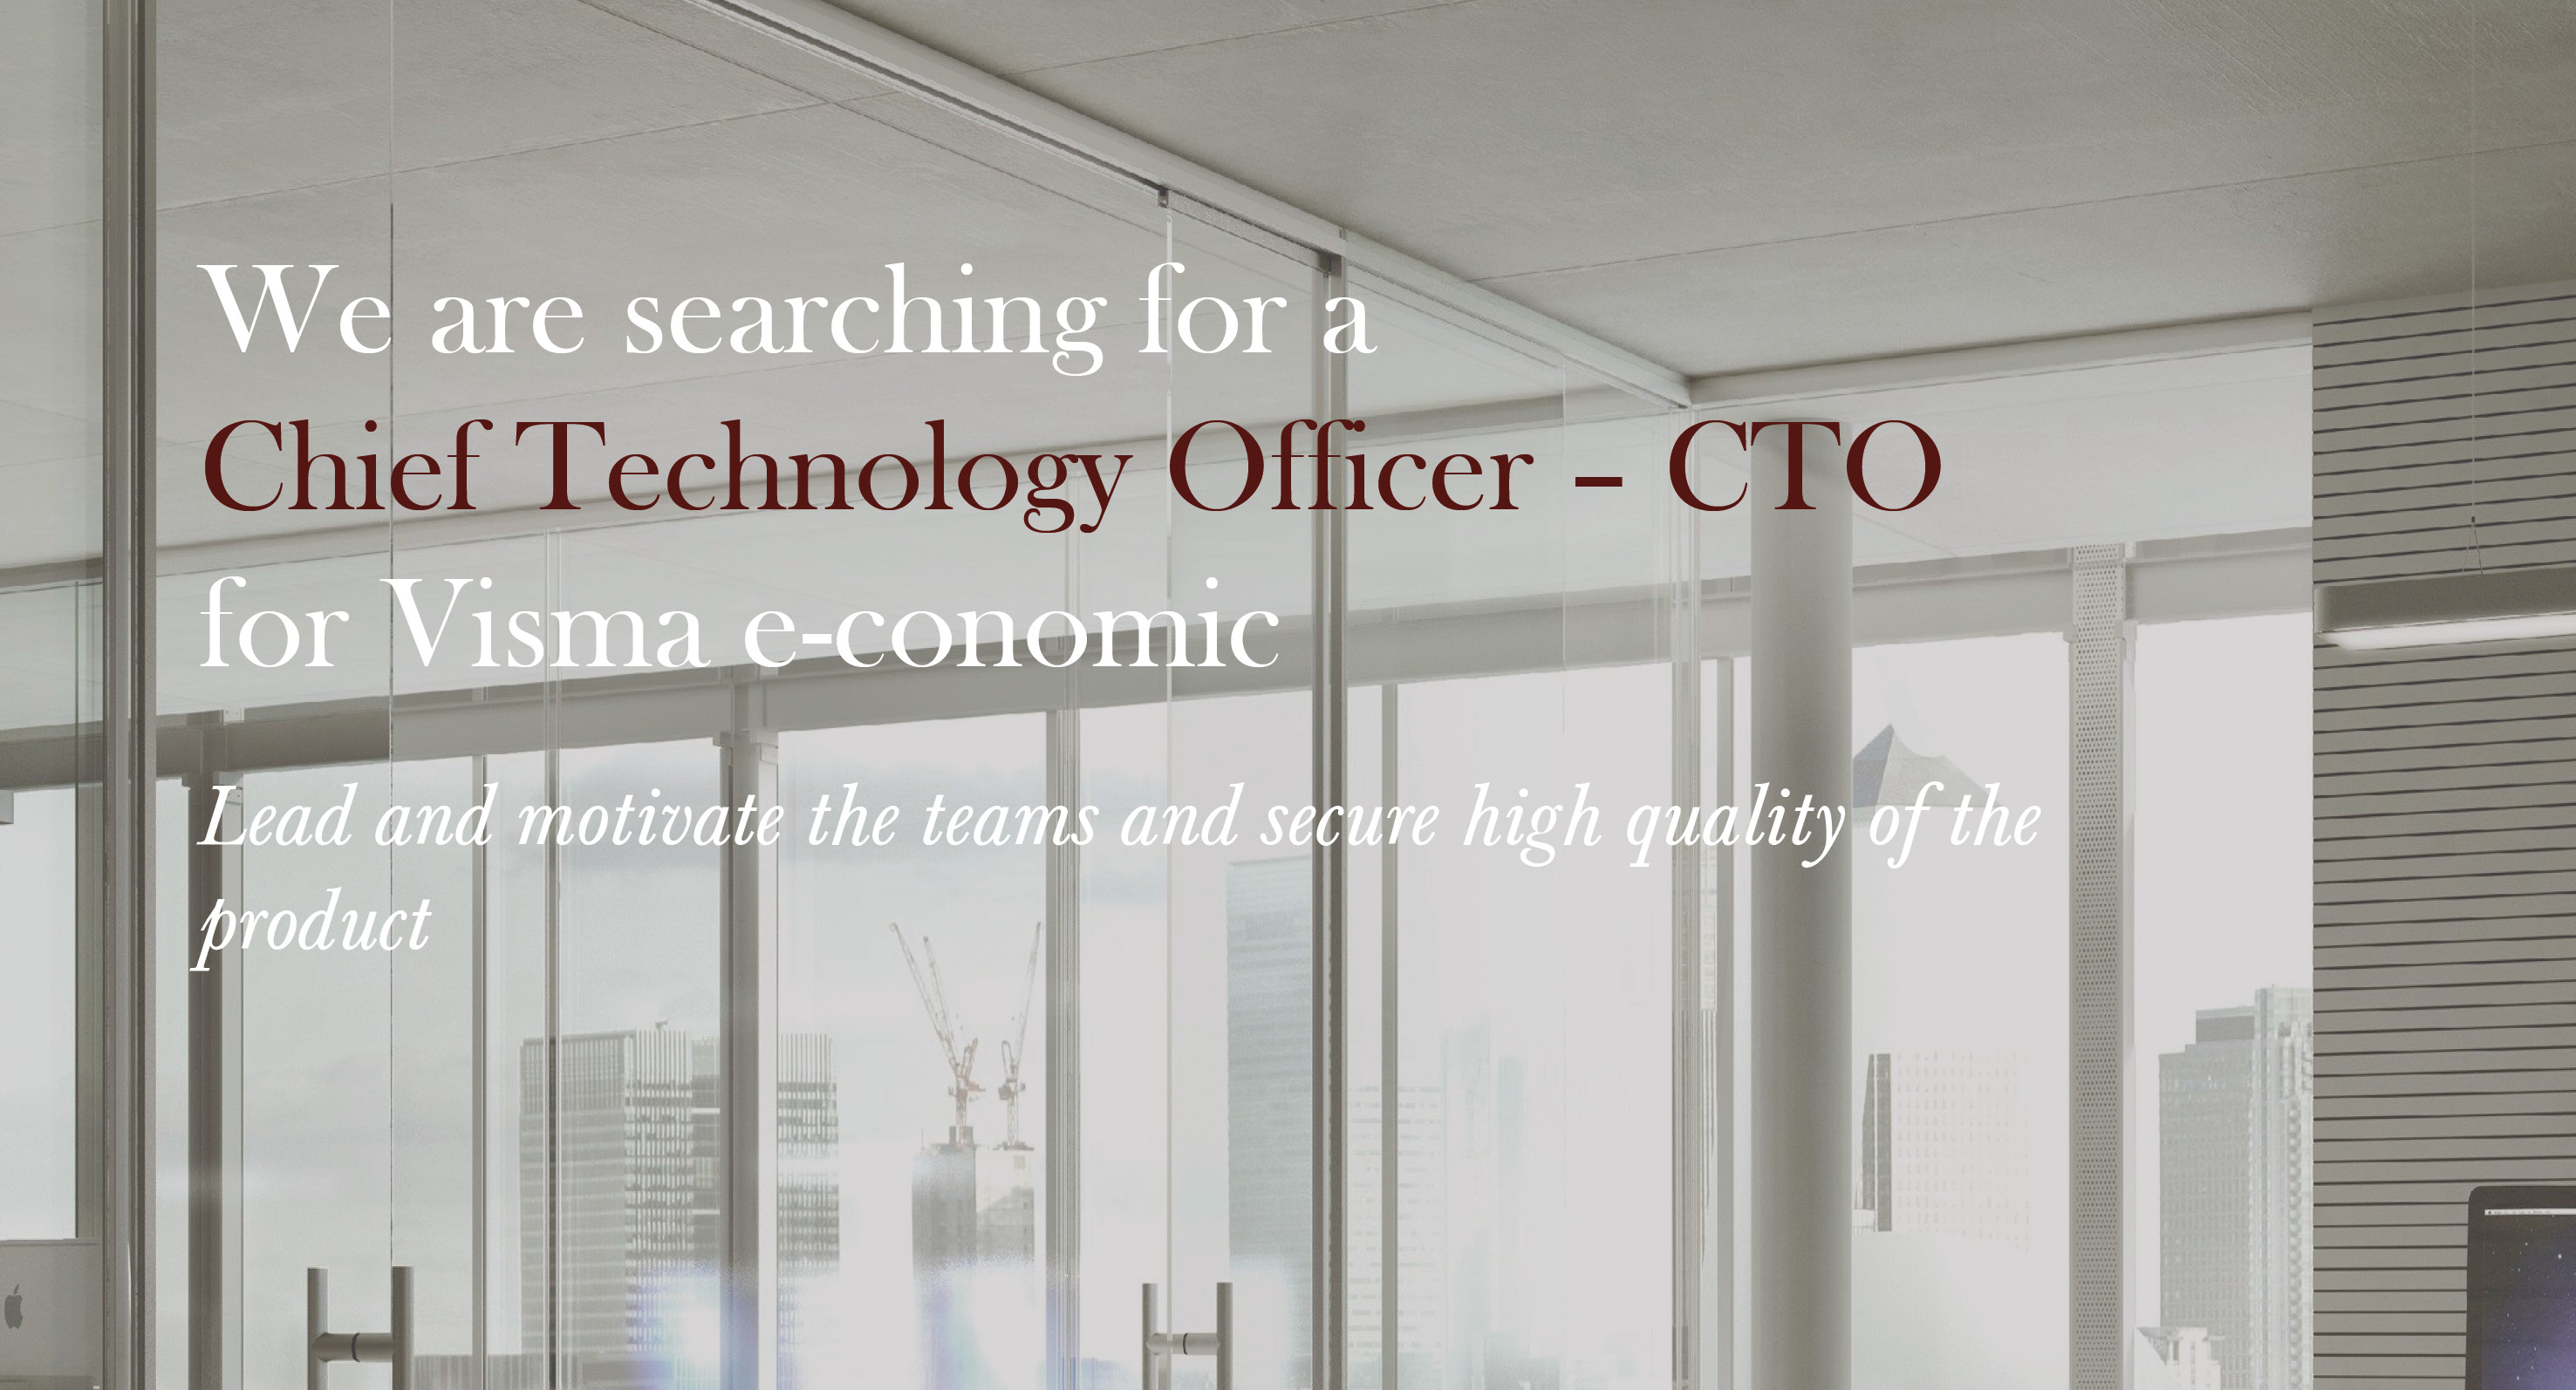 Cheif Technology Officer - CTO, Visma e-conomic